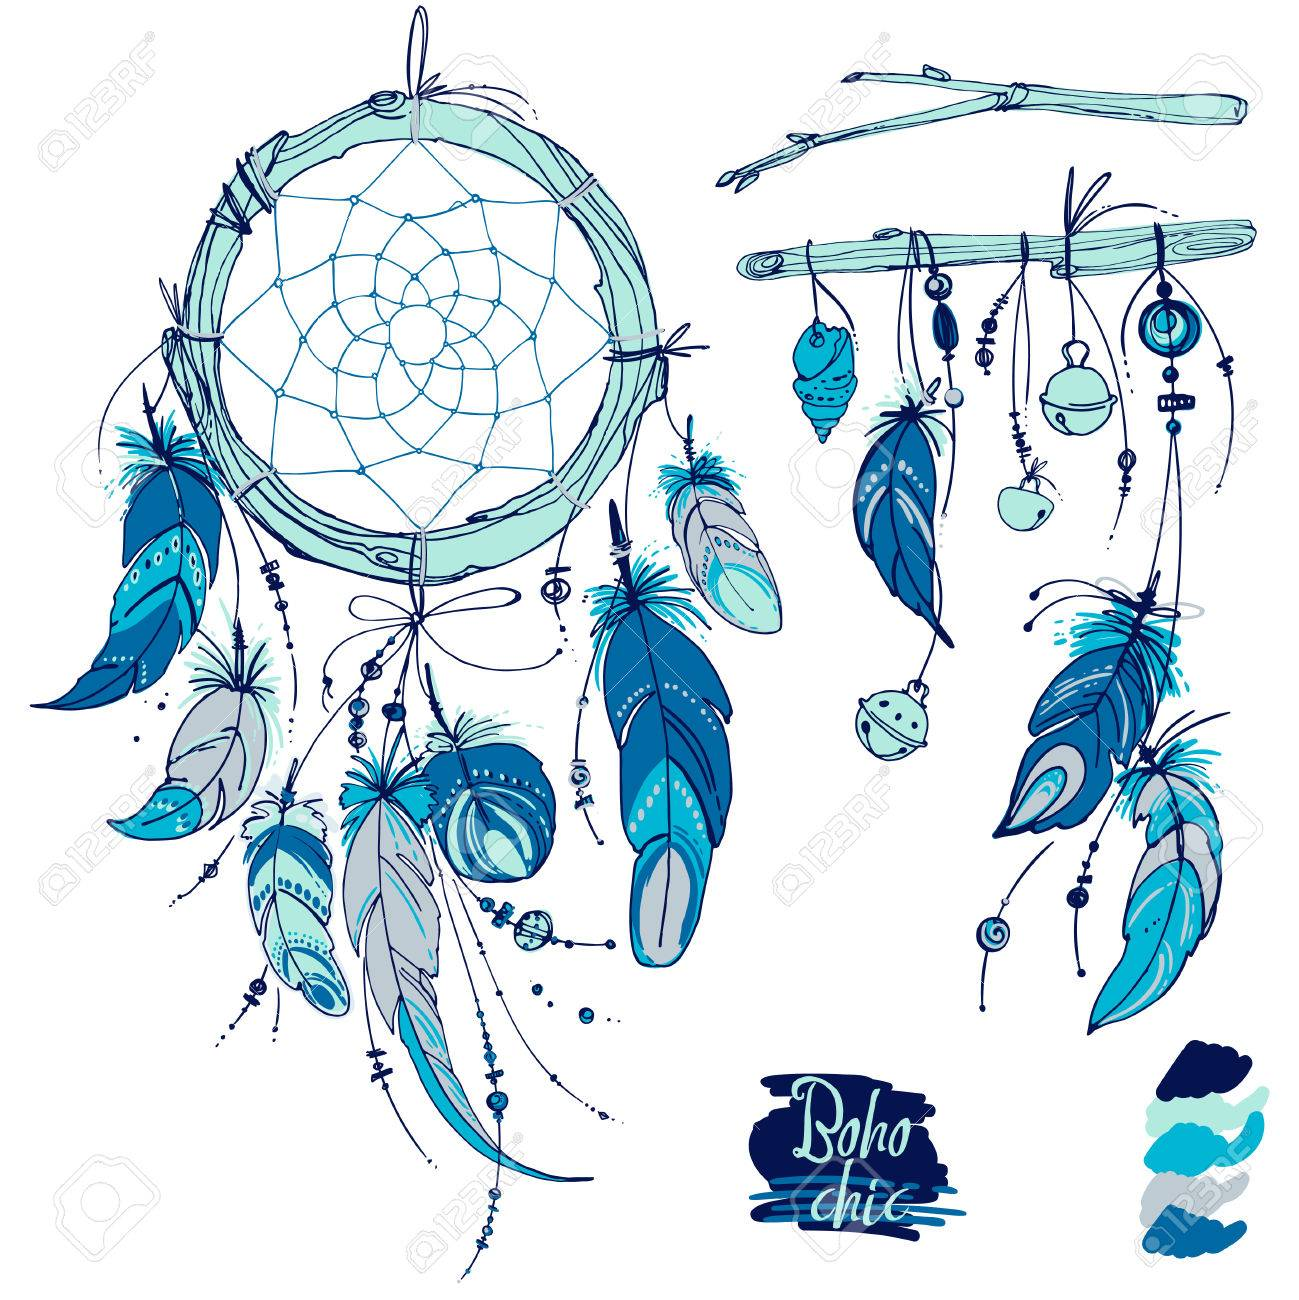 Dreamcatcher, Set of ornaments, feathers and beads. Native american indian dream catcher, traditional symbol. Feathers and beads on white background. - 55375775